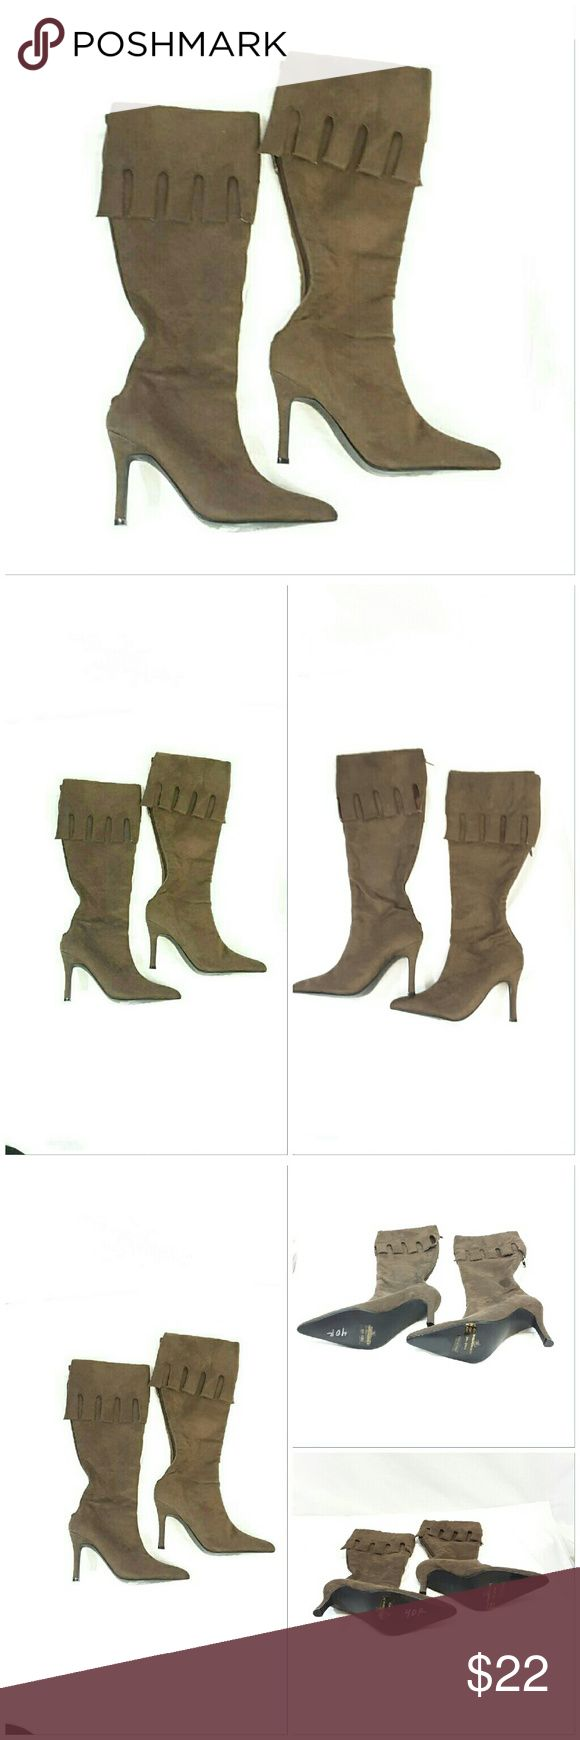 """NWOB Faux Suede  Heeled Knee High Boots size 6 NWOB, Faux Suede, Heeled, Knee High Boots, size 6, color tag says Frost, foam inside shafts, faux leather inside top lining and inside zipper lining, center back zipper, 5"""" large fringed top cuff, 3 3/4"""" heels, 15"""" shaft. ADD TO A BUNDLE! 20% BUNDLE DISCOUNT Shoes Heeled Boots"""